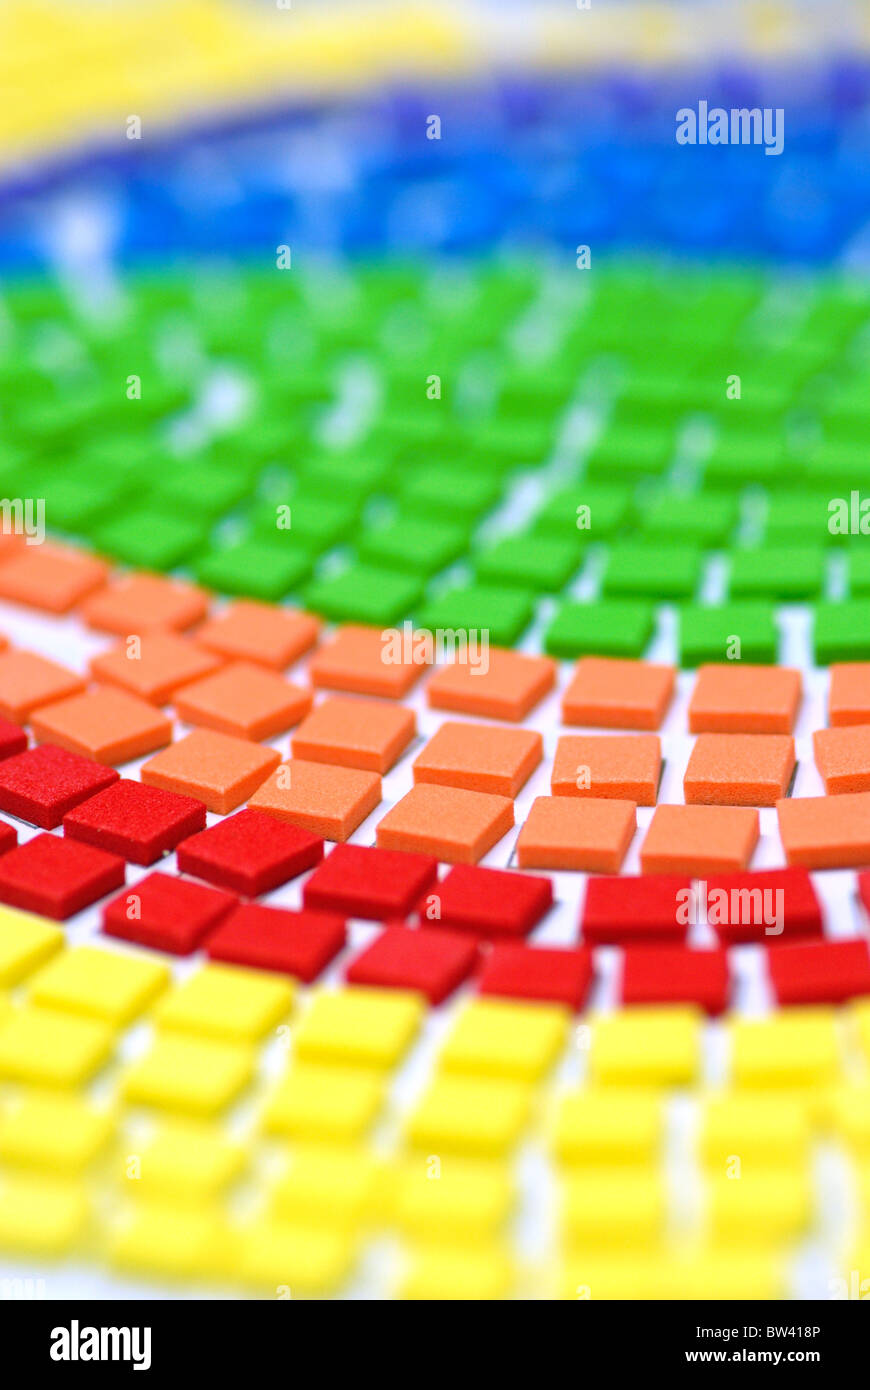 Colorful squares in rainbow colors form a design. - Stock Image